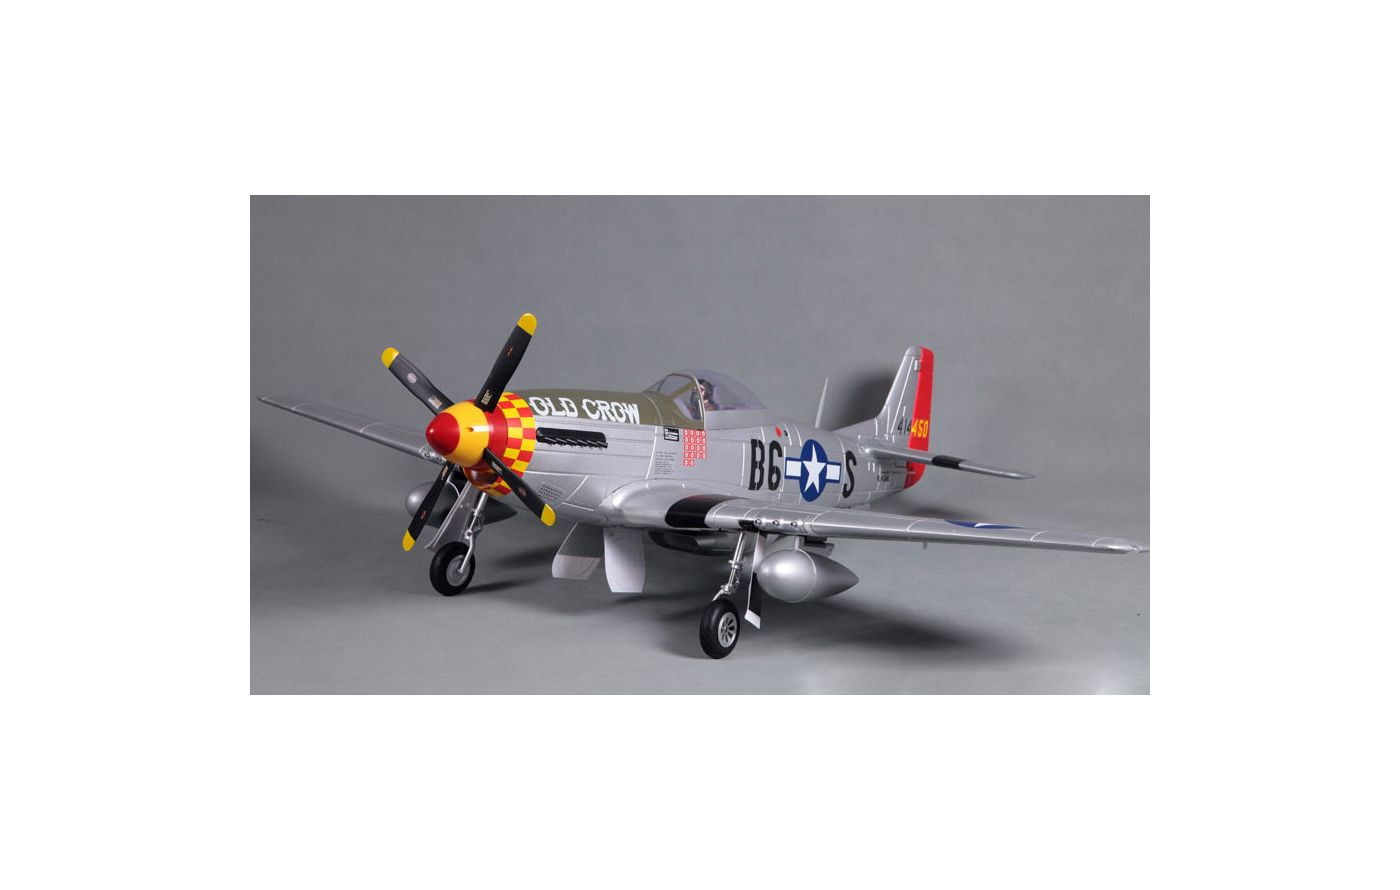 Image for P-51D V8 Old Crow PNP, 1450mm from Force RC